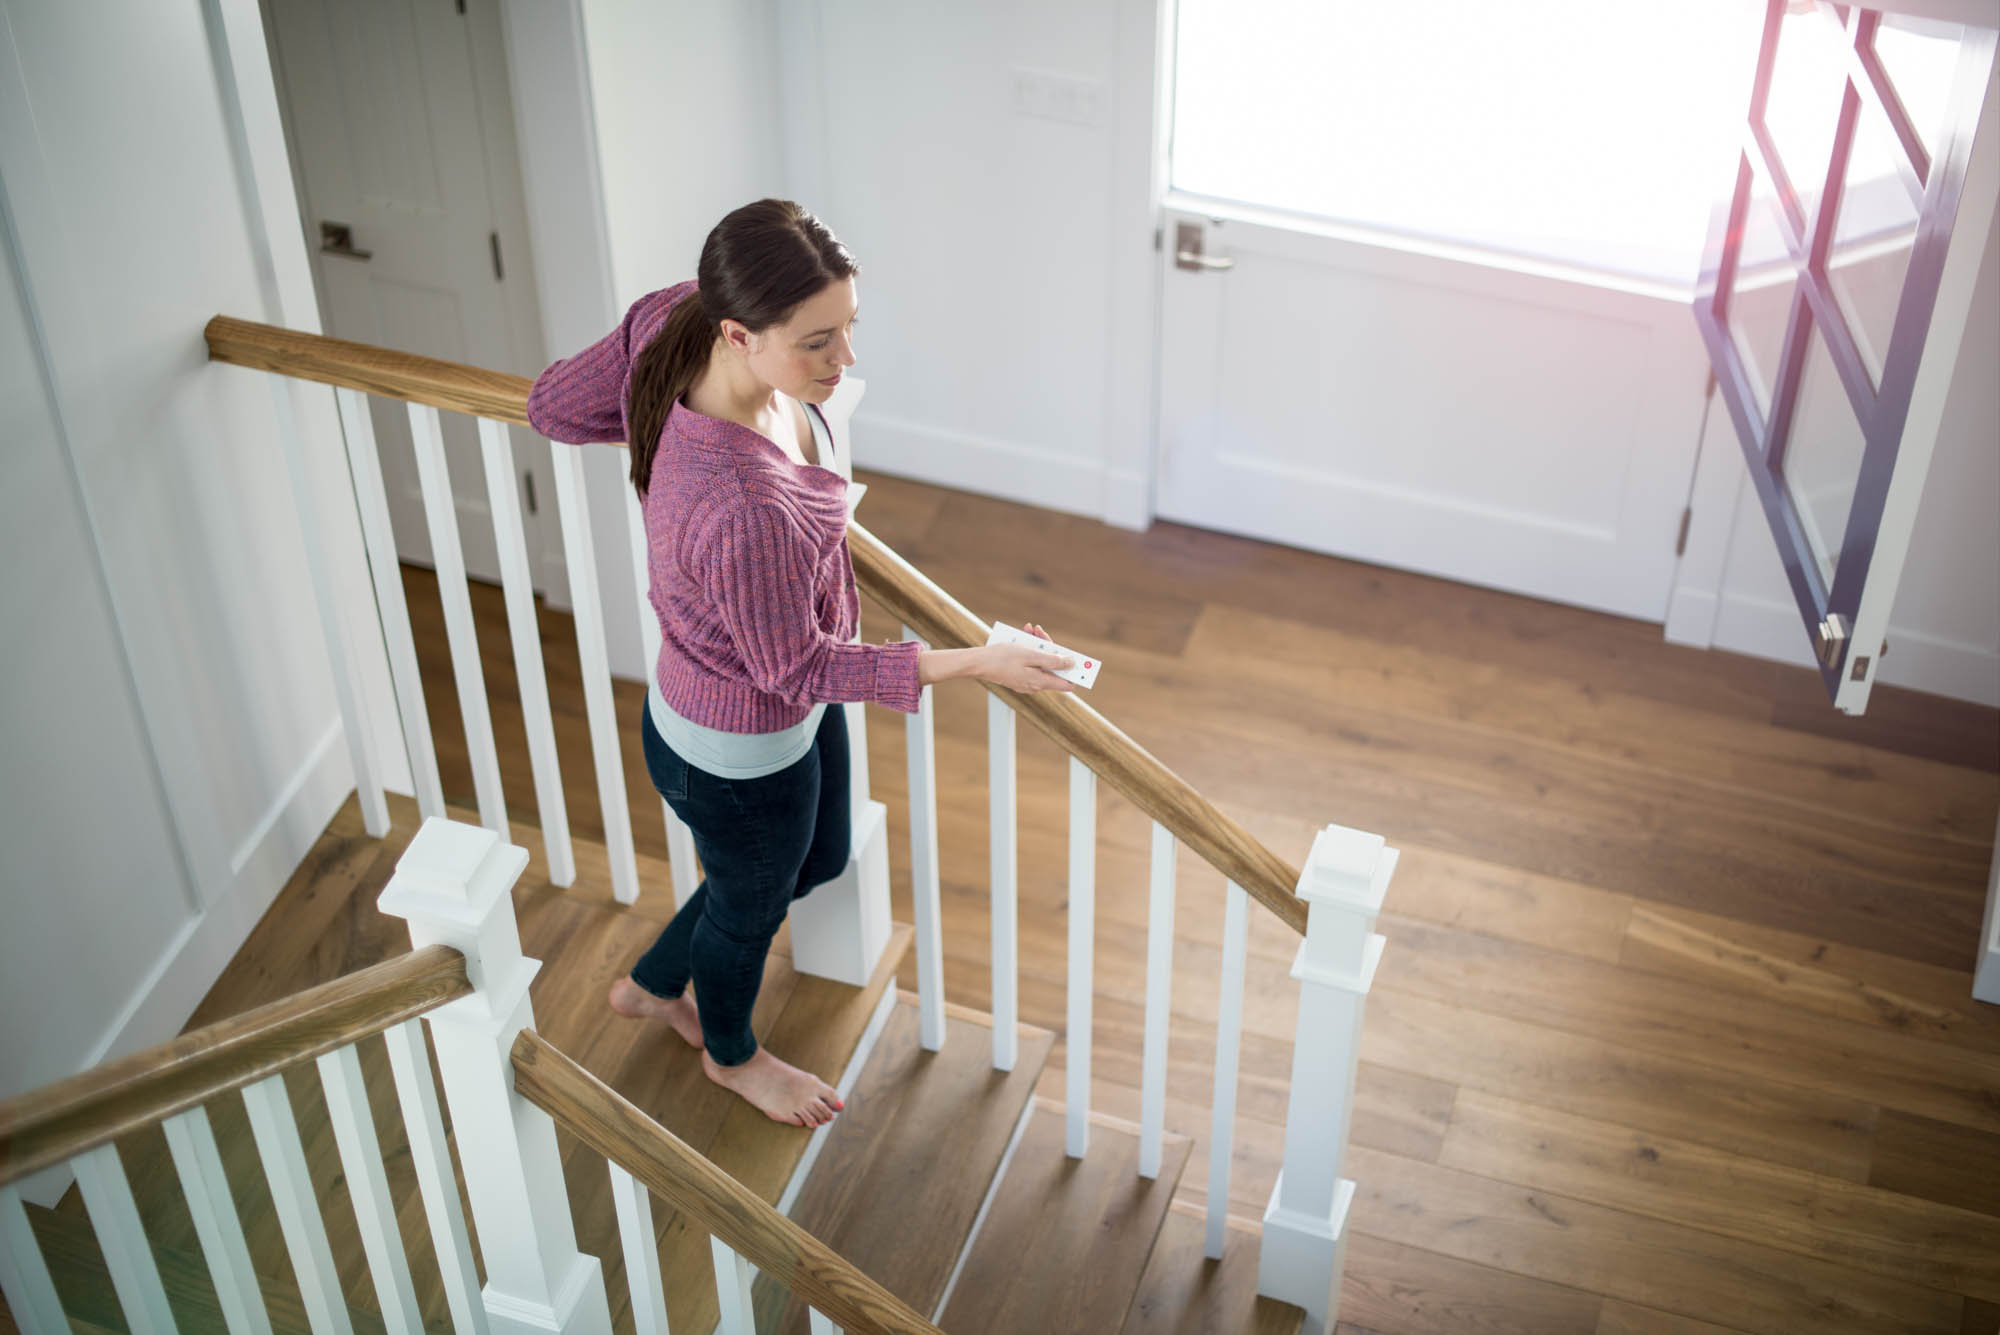 Young woman walking down stairs holding a remote